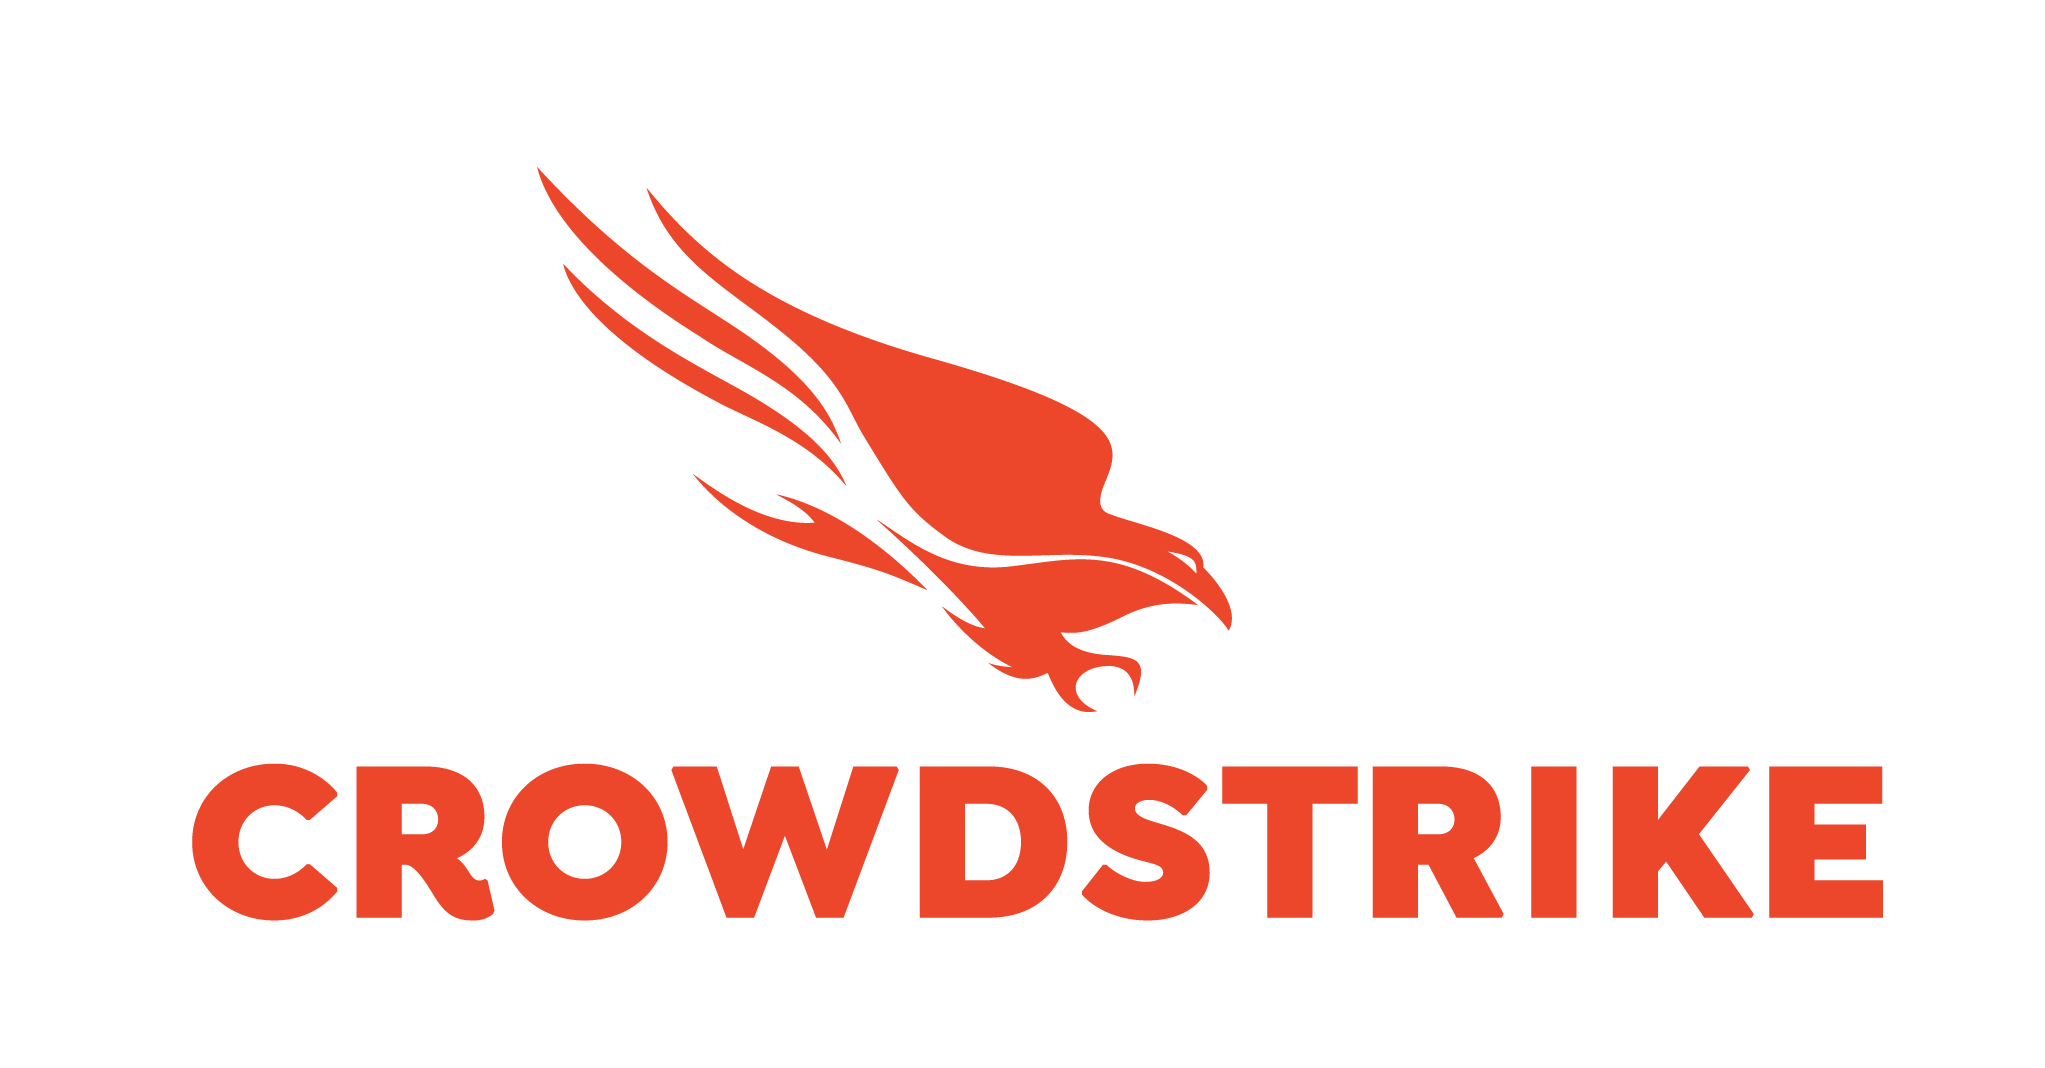 Image of crowdstrike logo